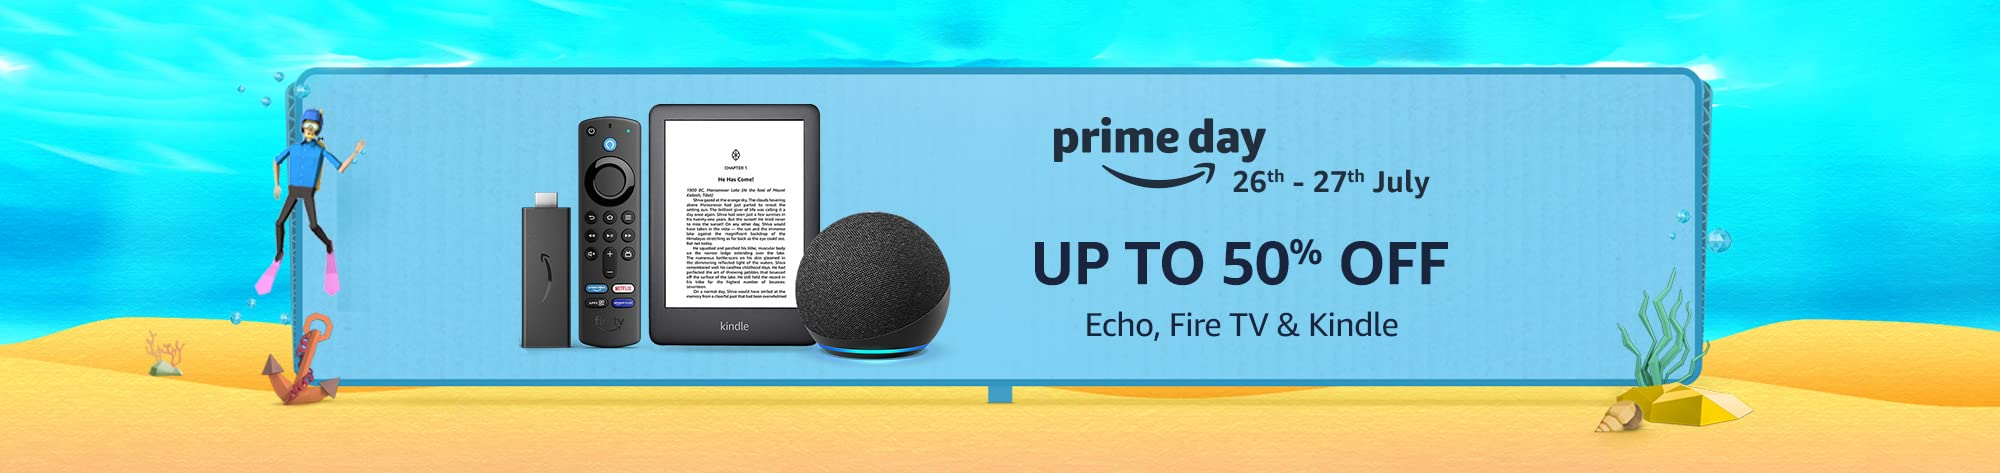 Prime Day - Echo, Fire TV & Kindle